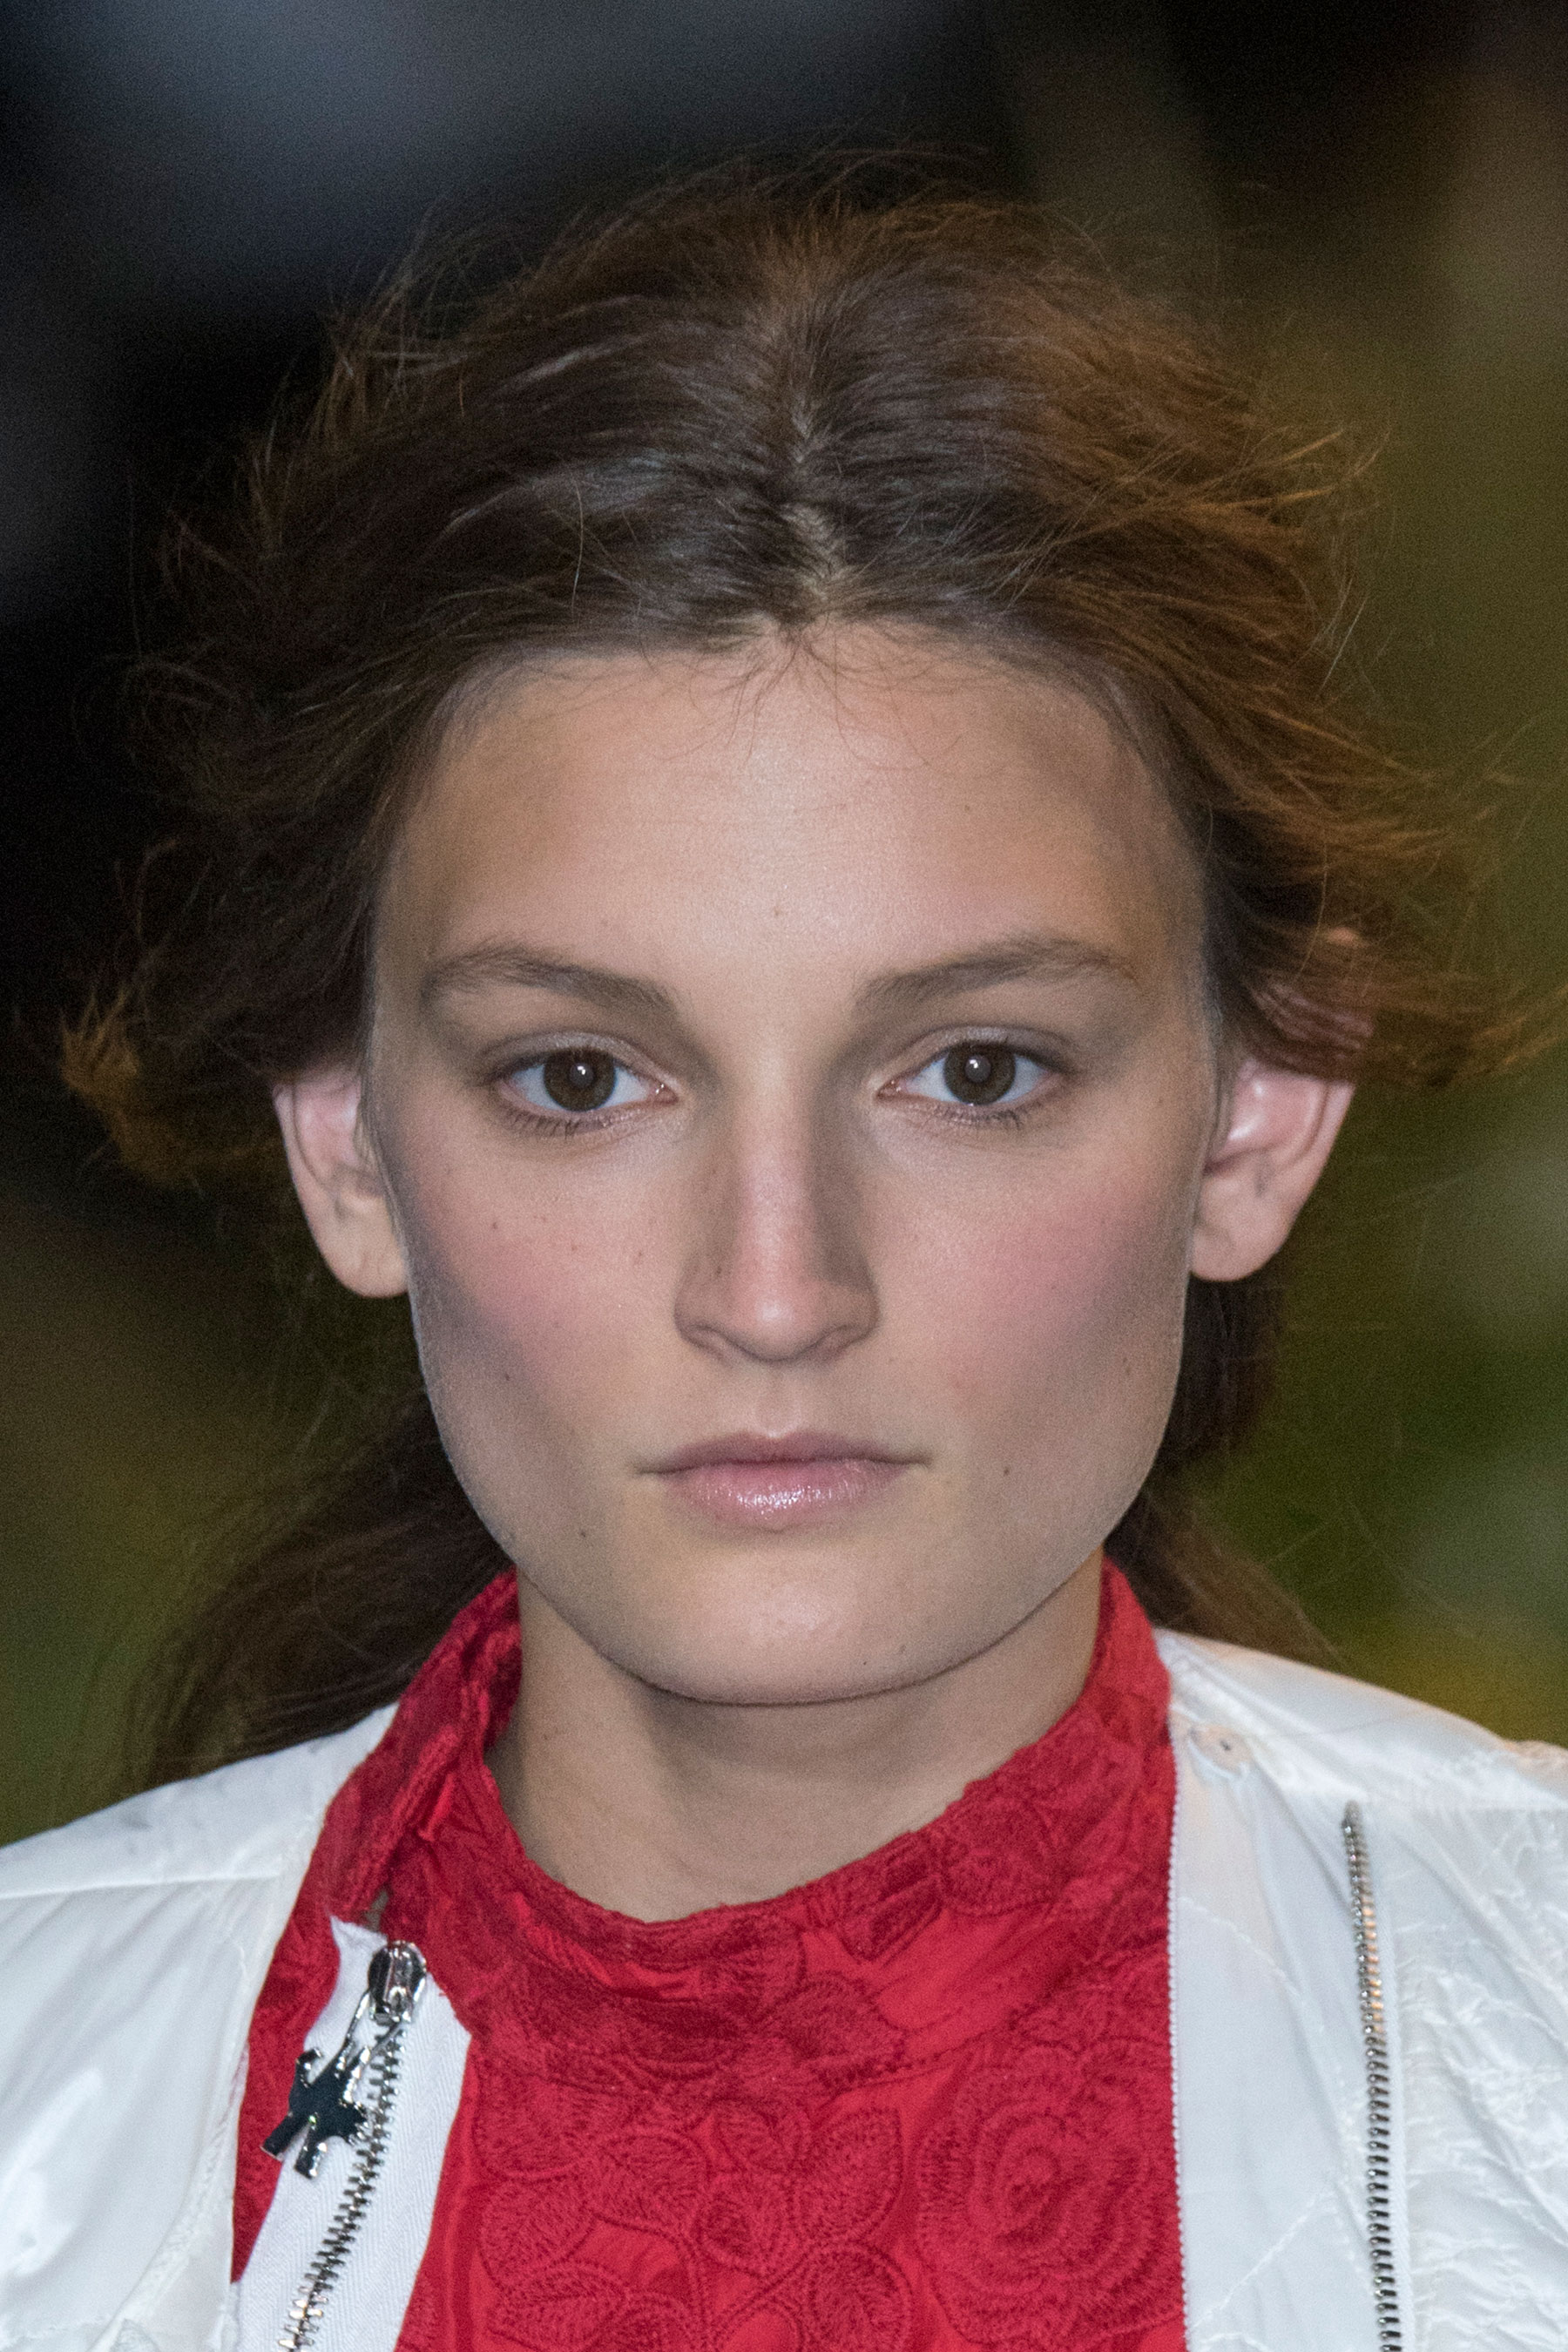 Moncler-Gamme-Rouge-spring-2016-runway-beauty-fashion-show-the-impression-51